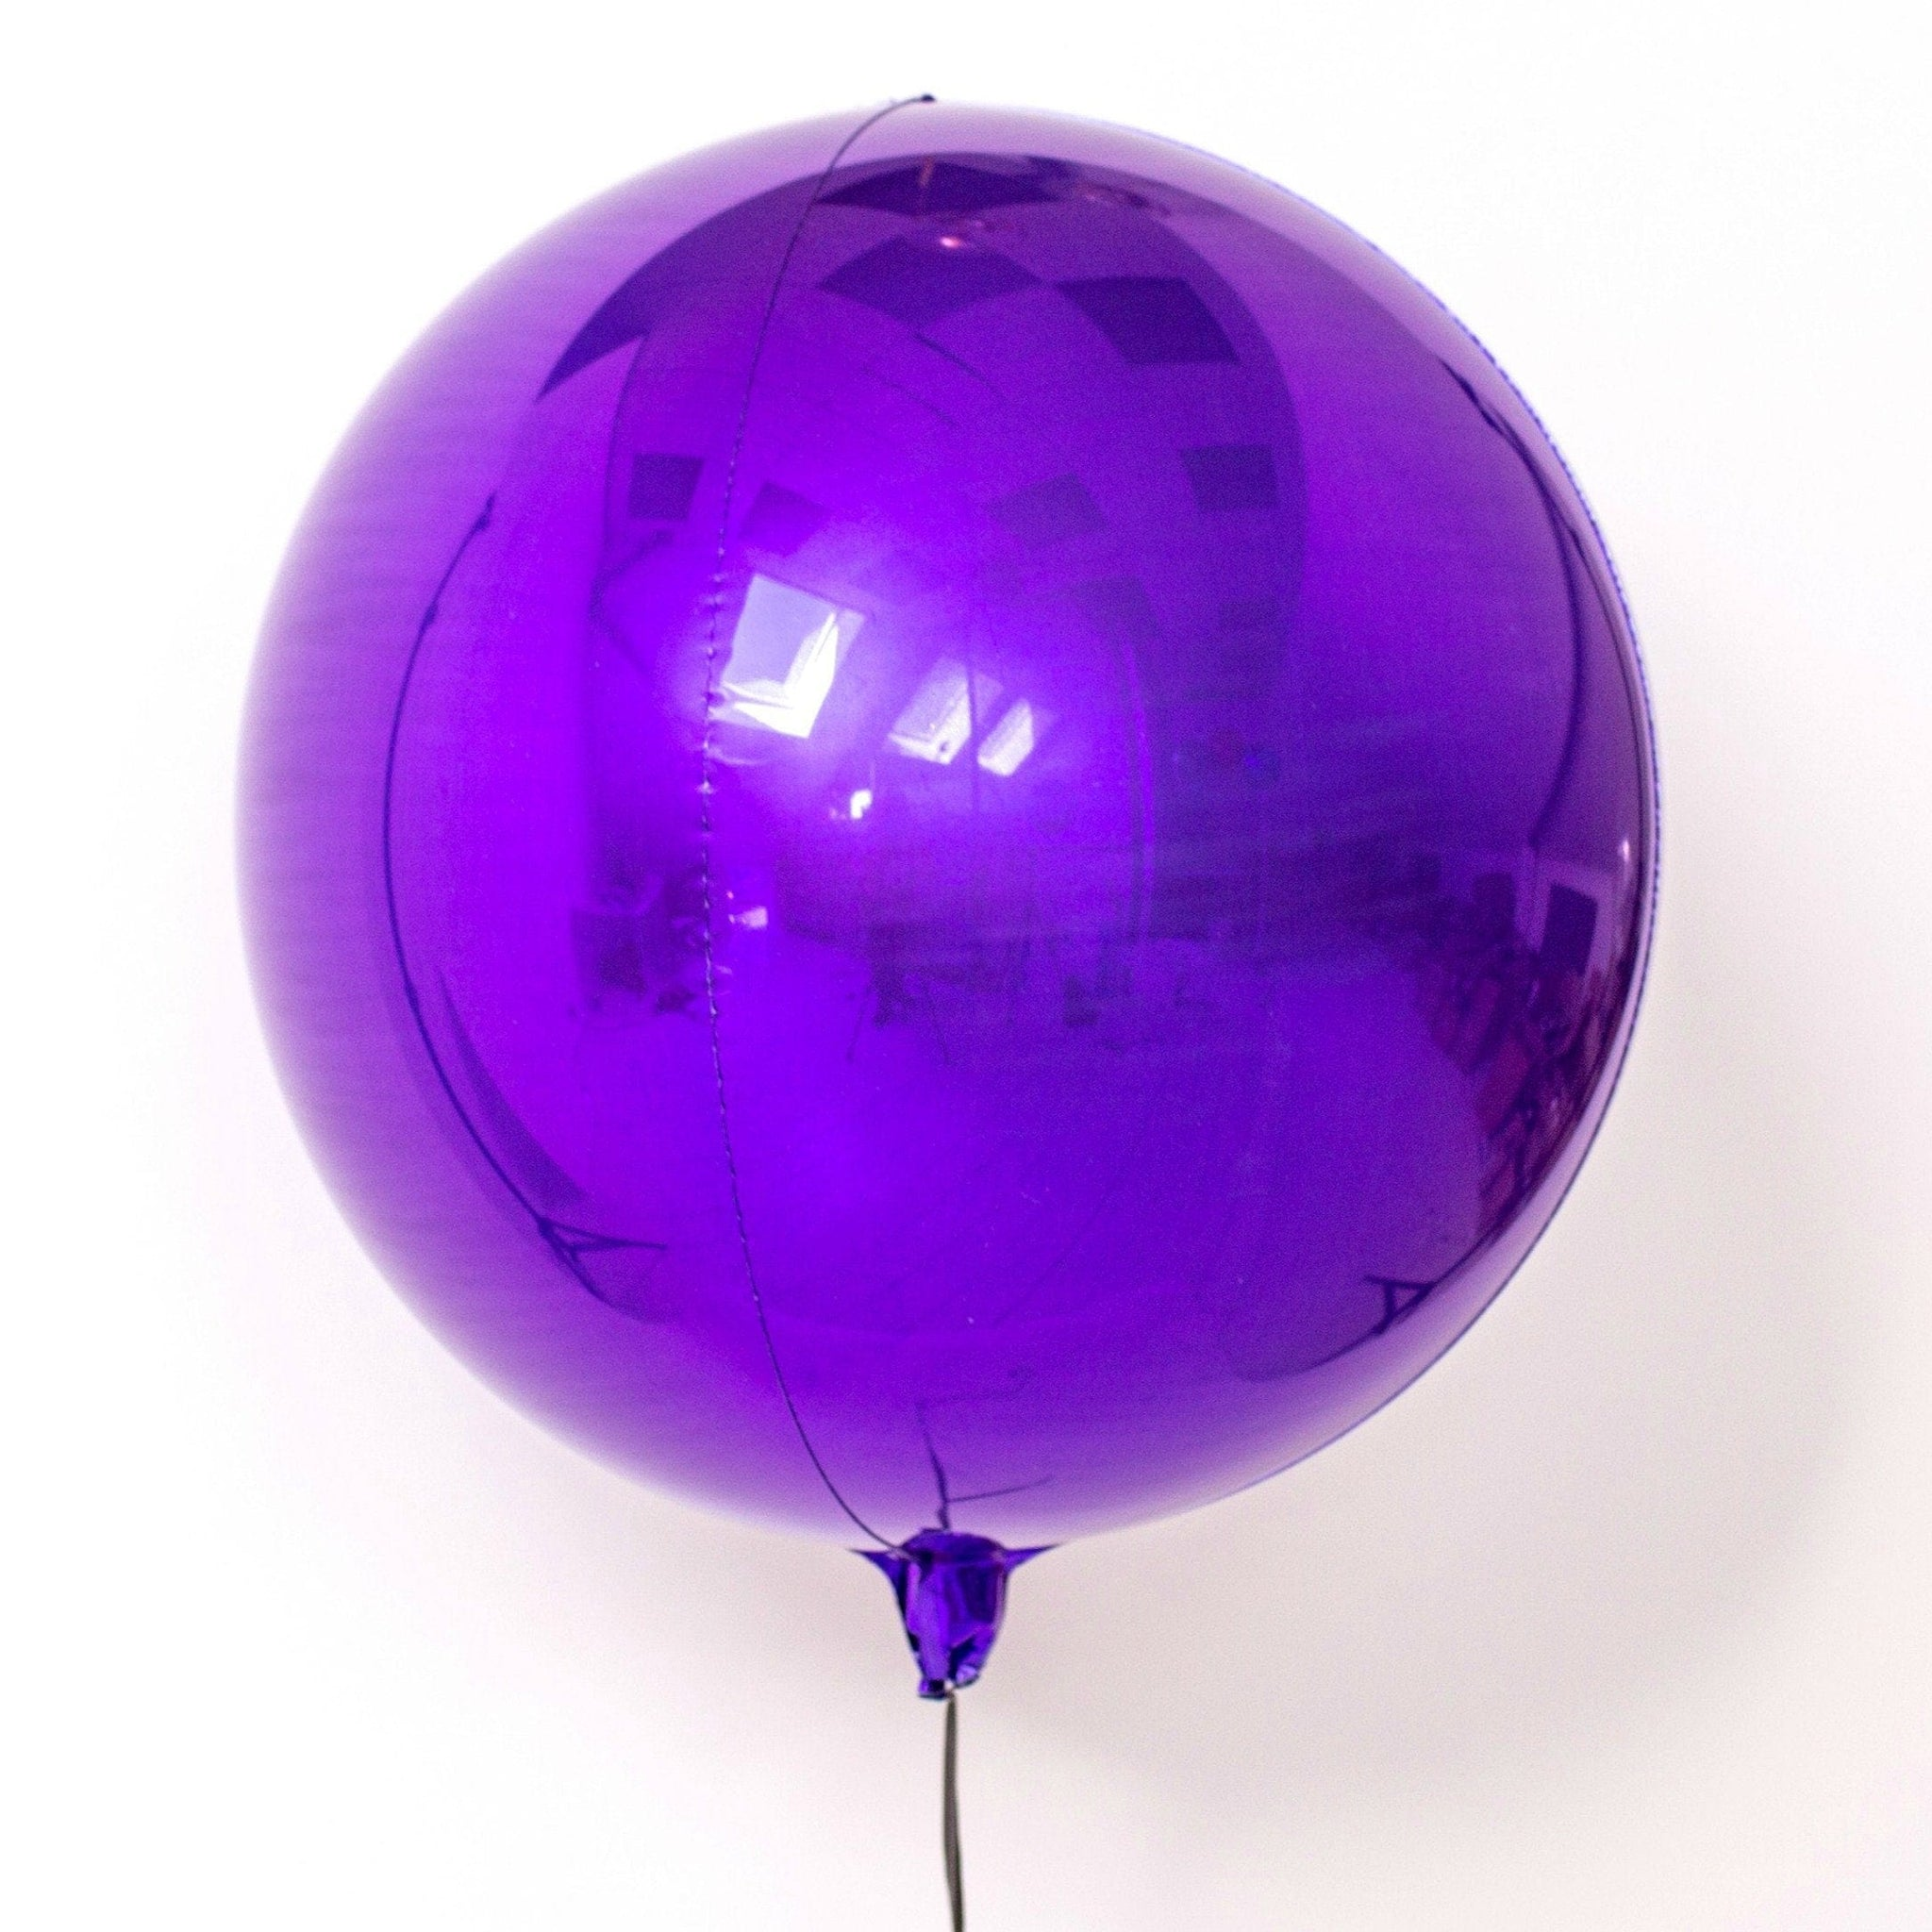 Purple Orb Balloons | Foil Orbz Balloons | Big Round Foil Balloons